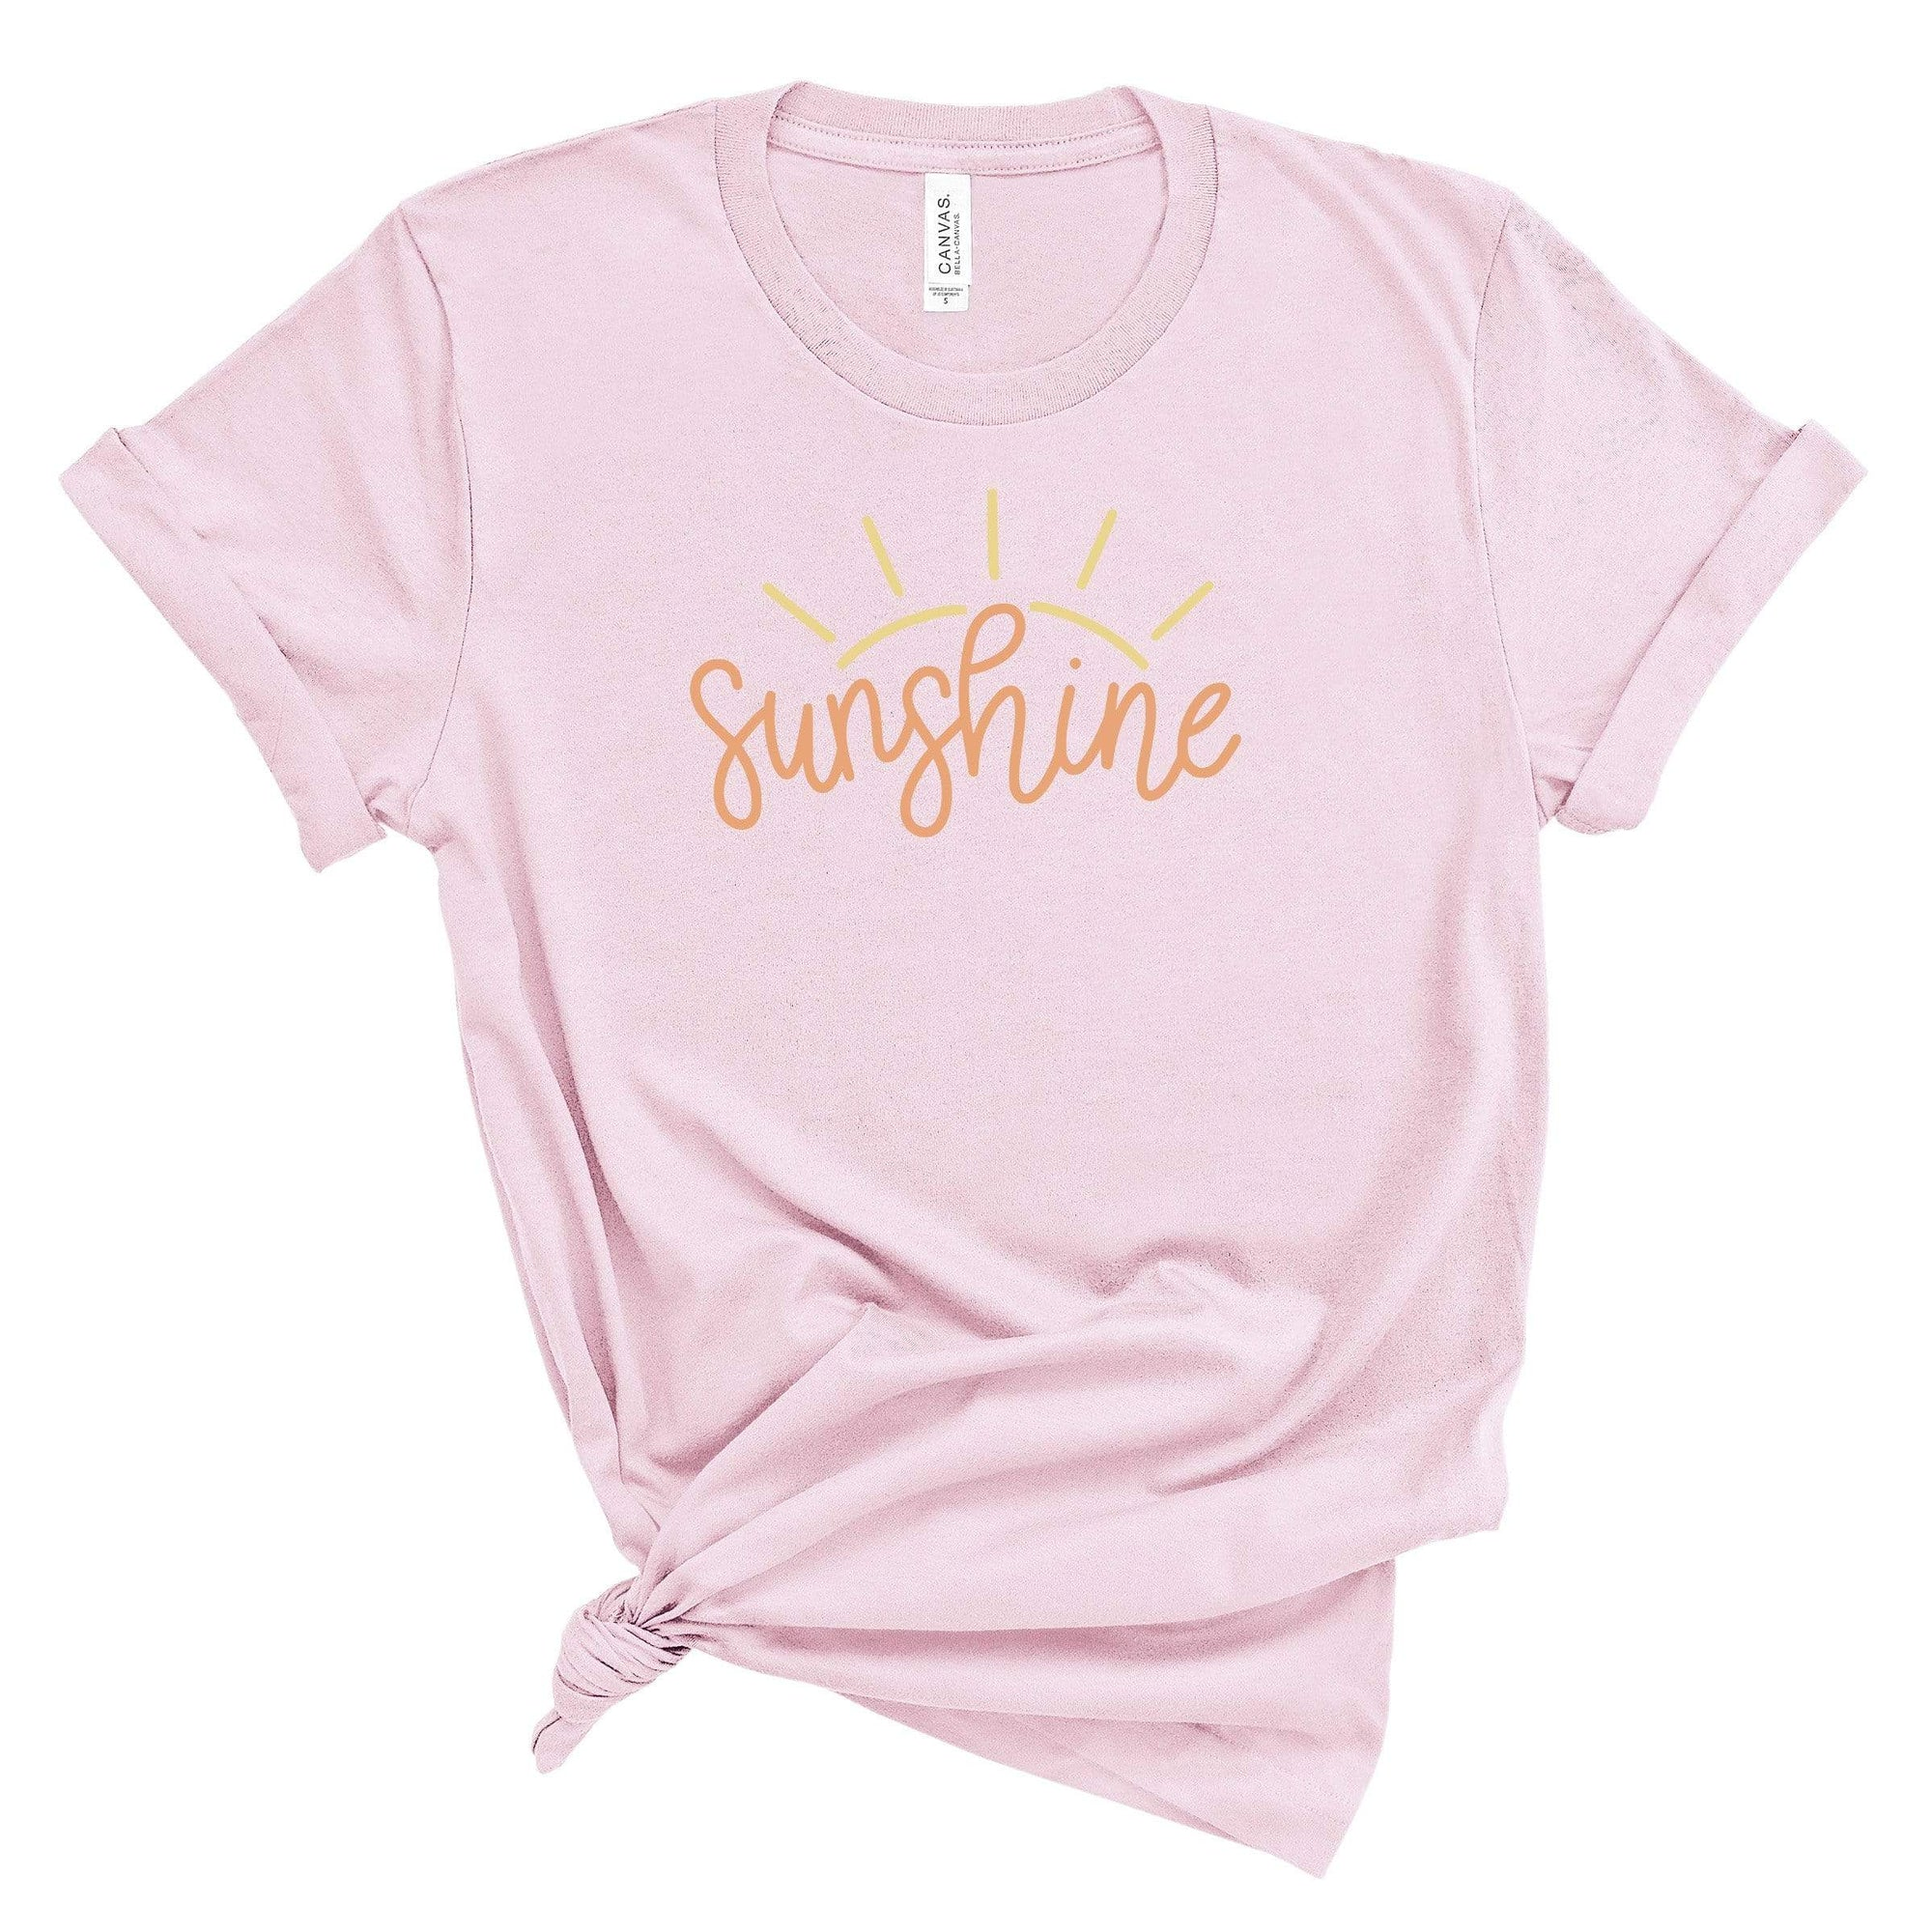 Leanne & Co. Apparel Hello Sunshine Adult Short-Sleeve Unisex T-Shirt